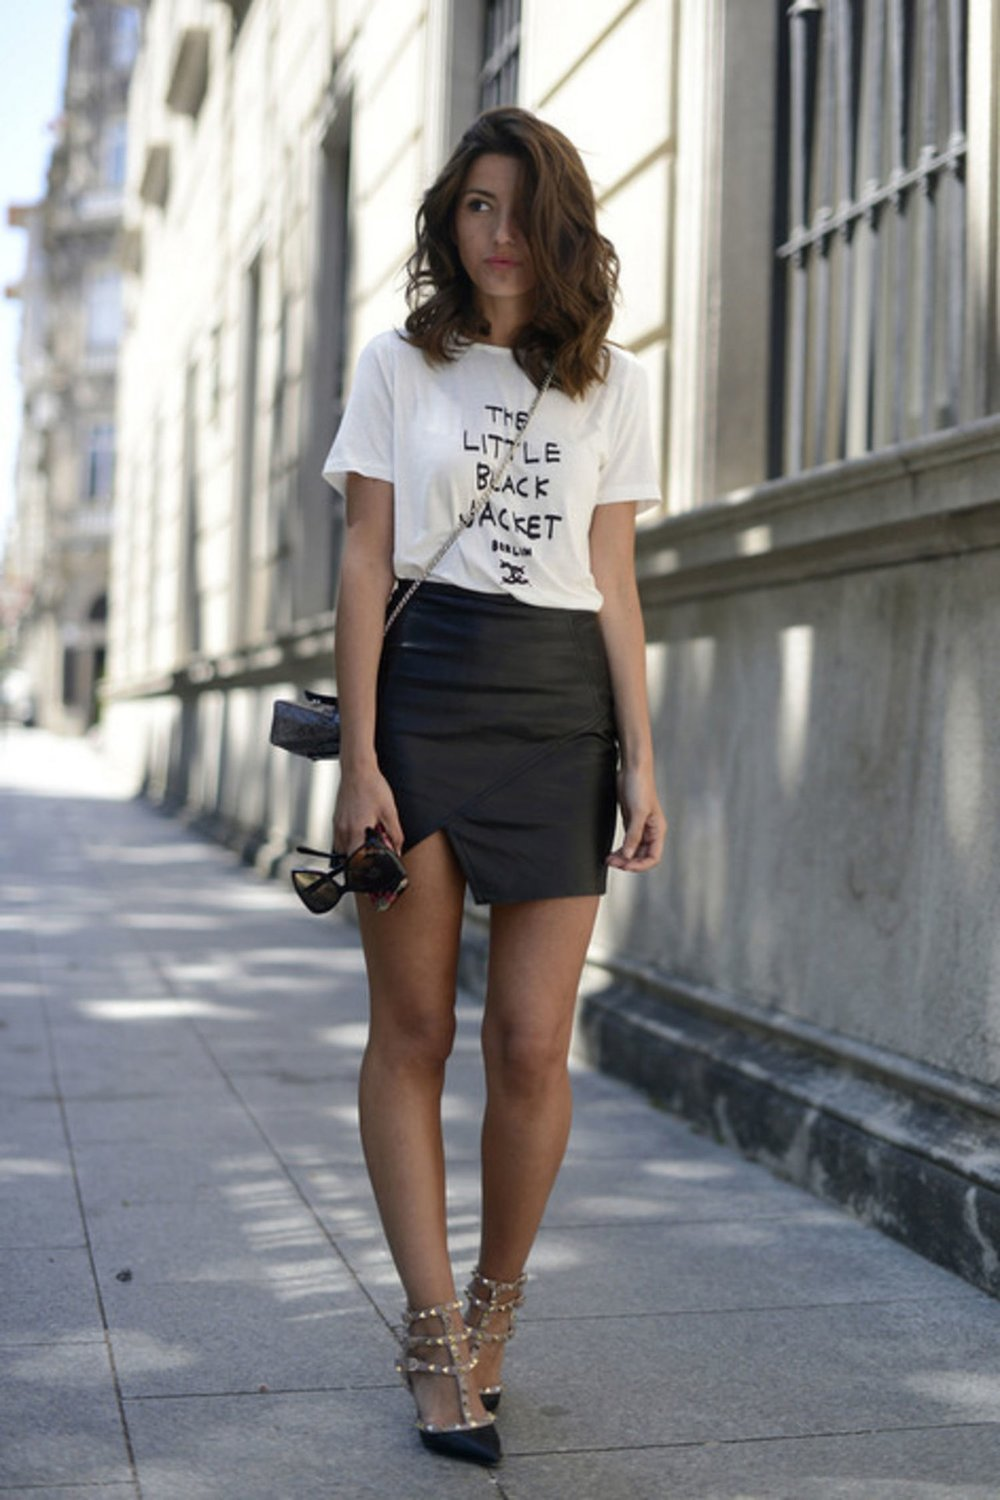 fashion-2015-07-graphic-tee-lolobu-main.jpg